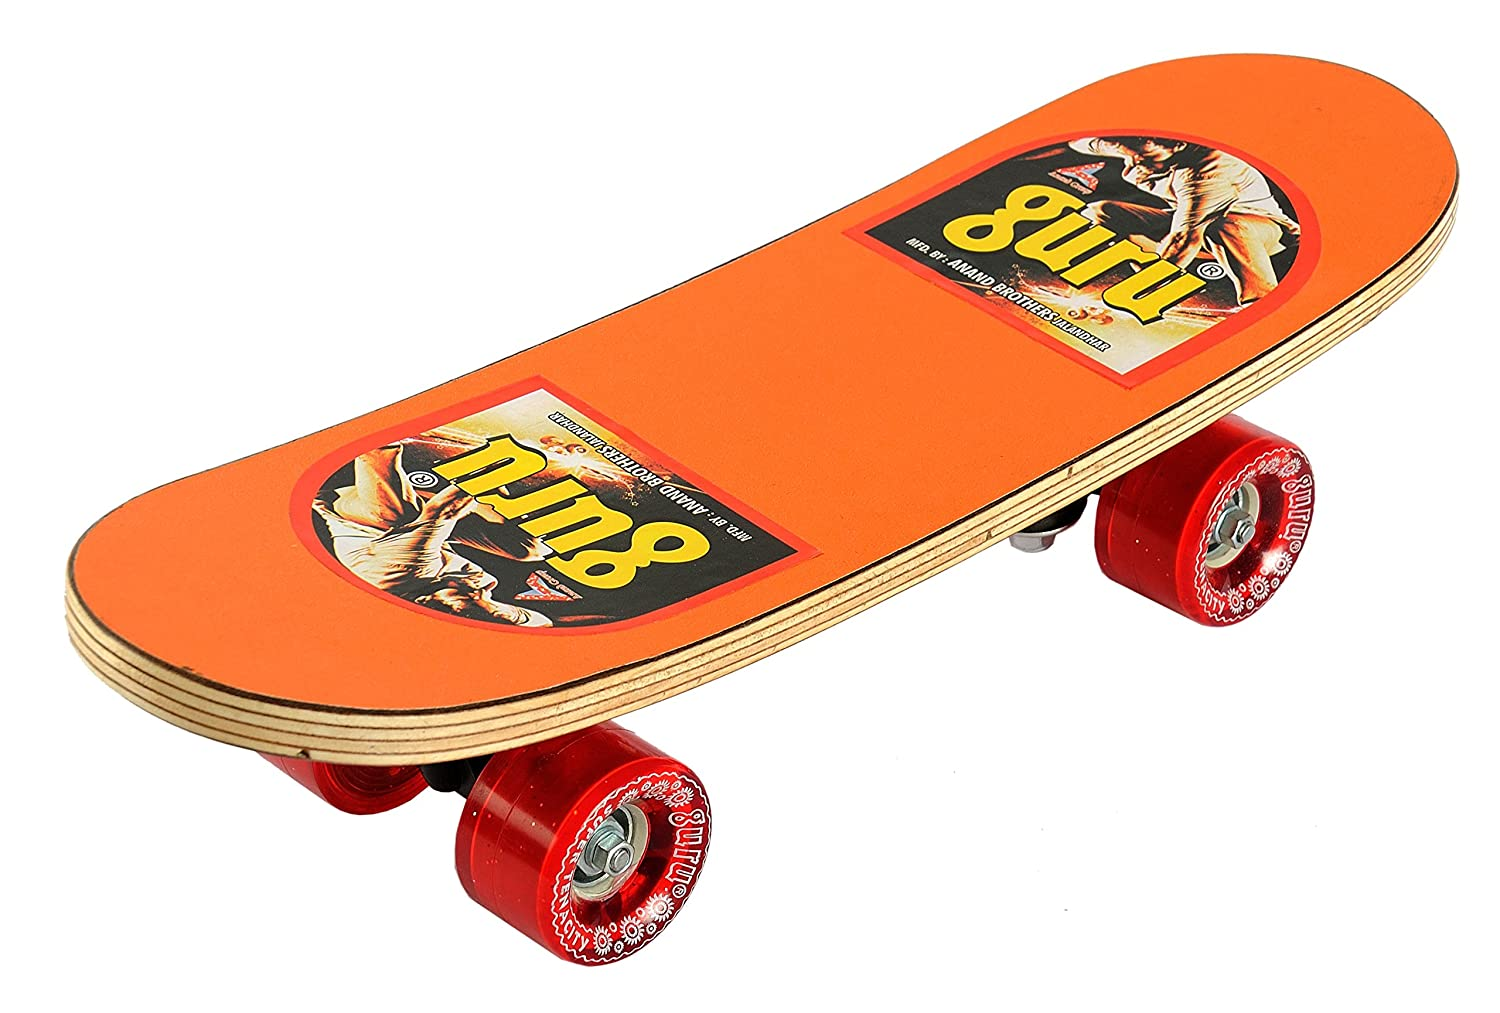 5161f42463 Skateboards Online   Buy Skateboards in India at Best Prices - Amazon.in